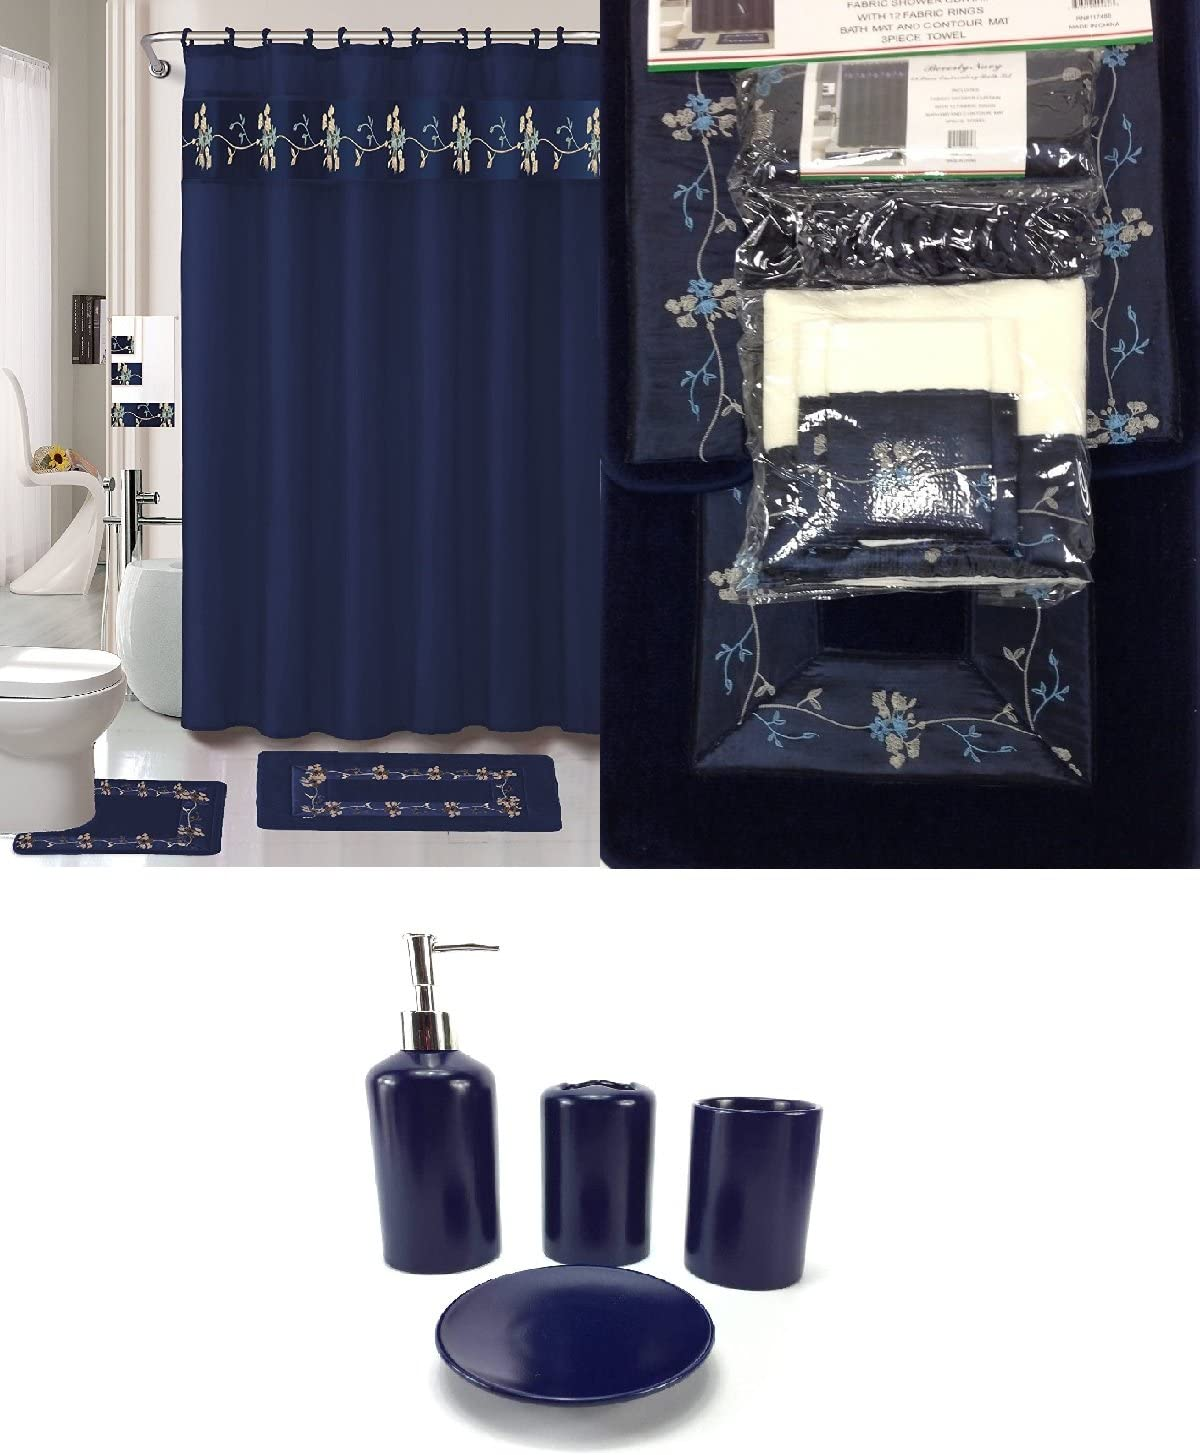 10 Piece Bath Accessory Set Navy Blue Flower Bathroom Rug Set + Shower  Curtain & Accessories